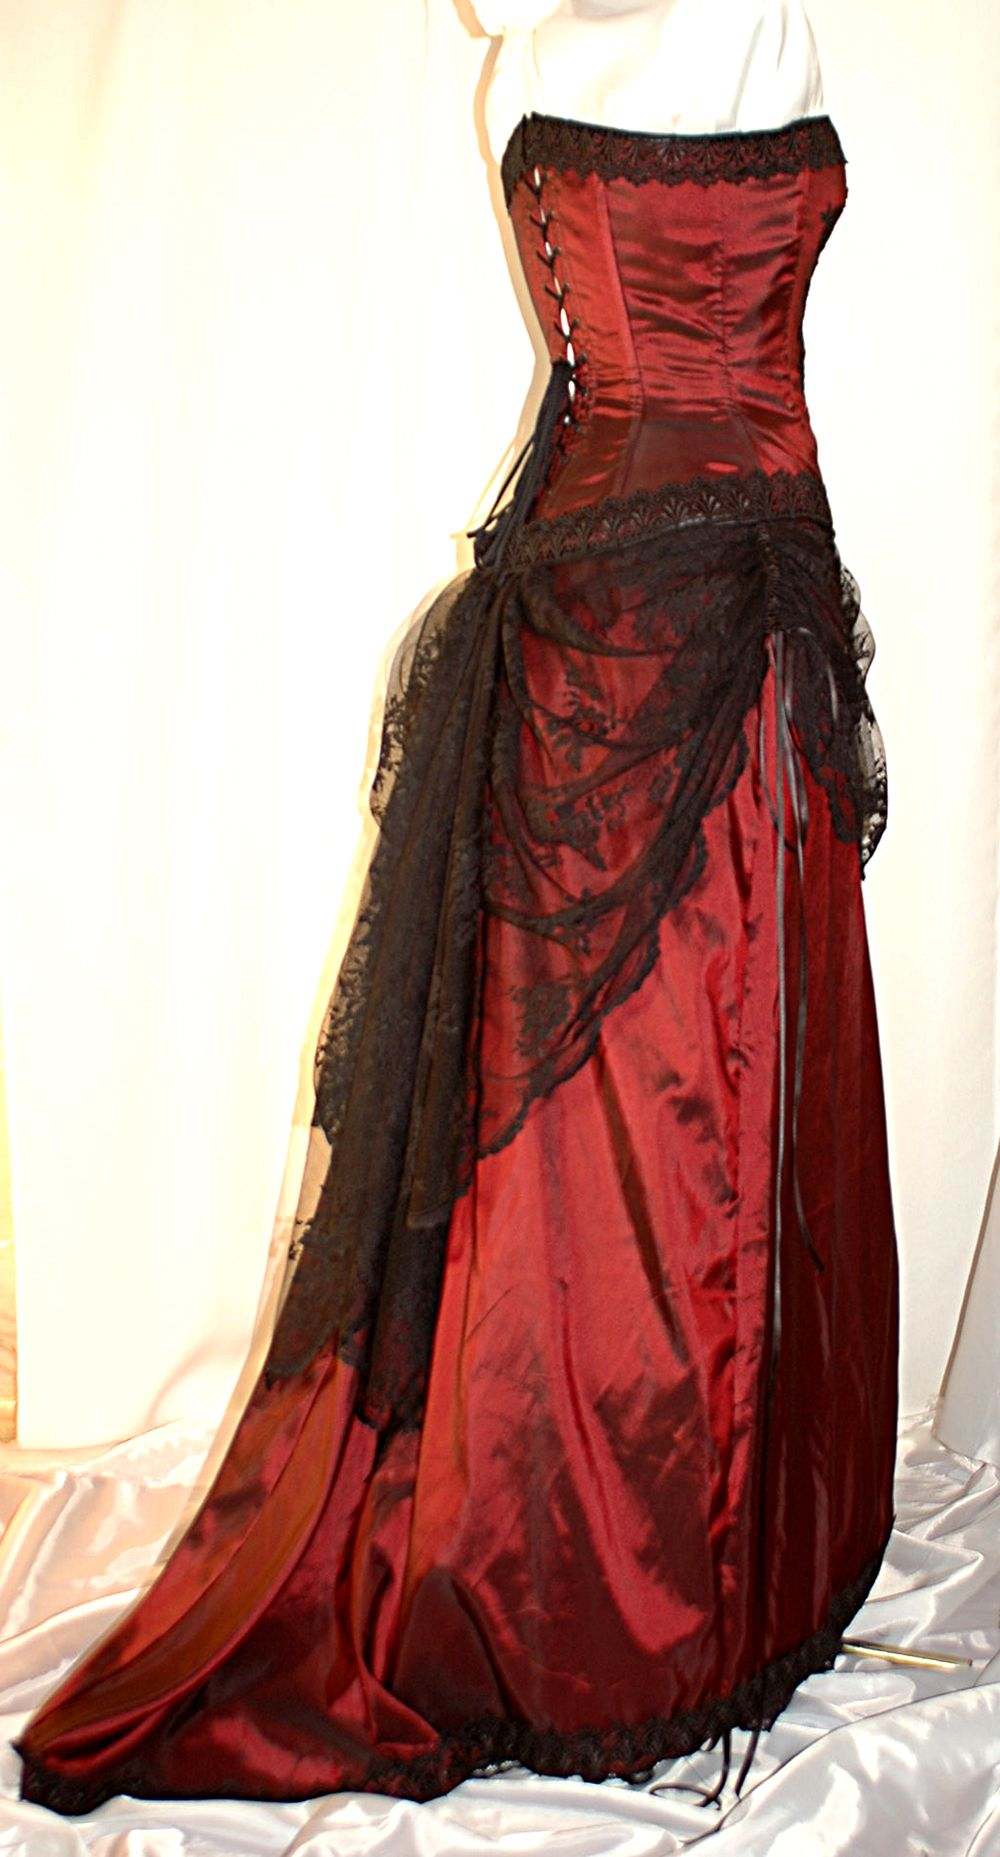 Burgundy and black victorian inspired adjustable gown